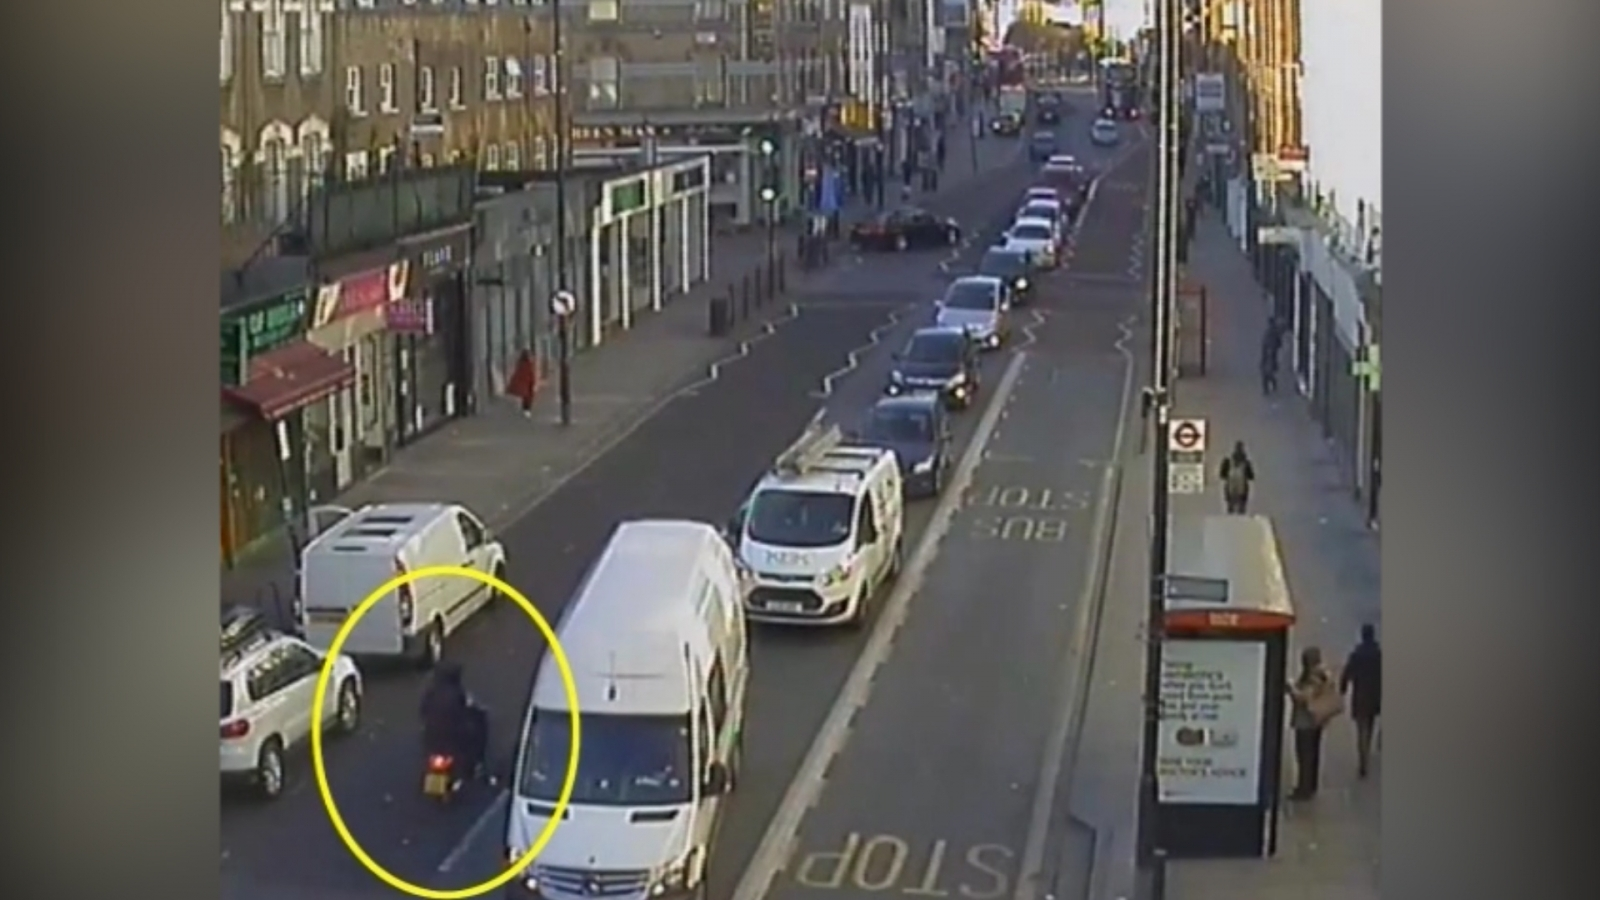 Stolen moped thief caught by police after crashing and nearly killing accomplice